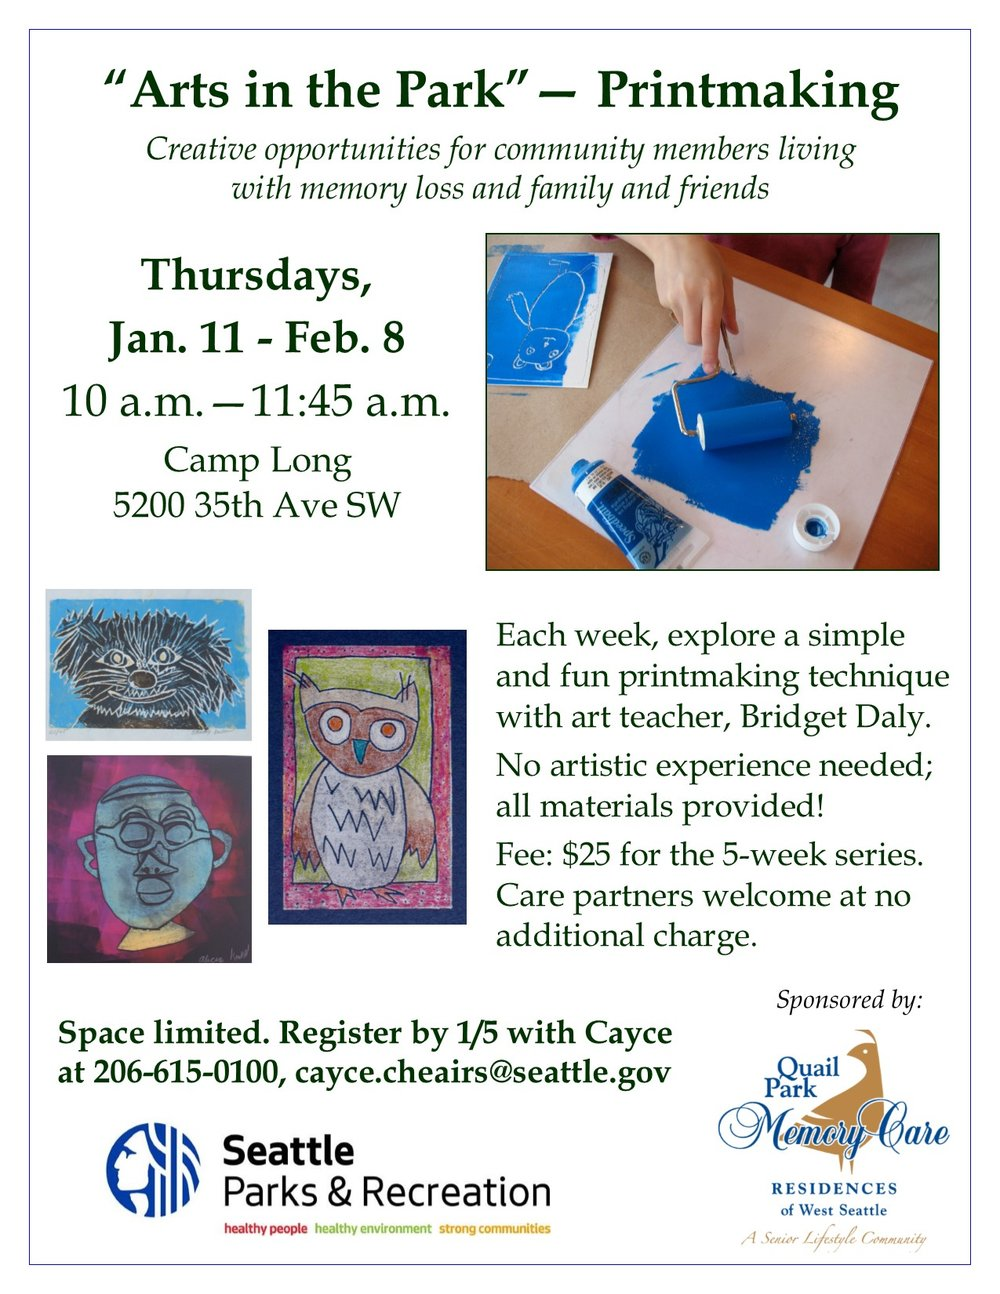 Arts in the Park Printmaking Flyer Winter 2018.jpg